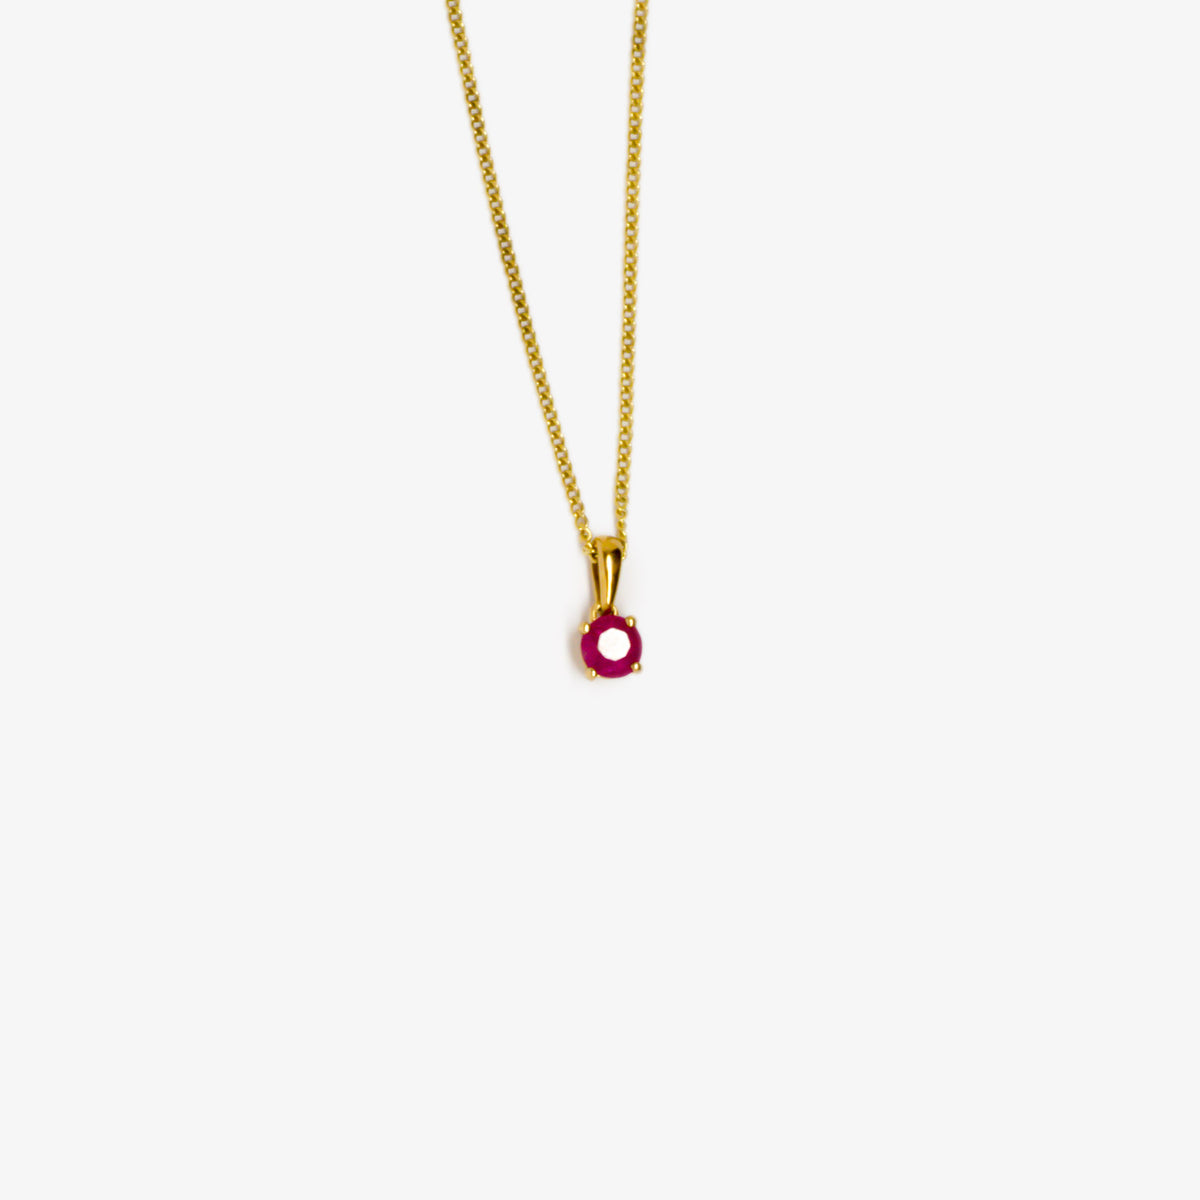 Round Ruby Pendant Necklace